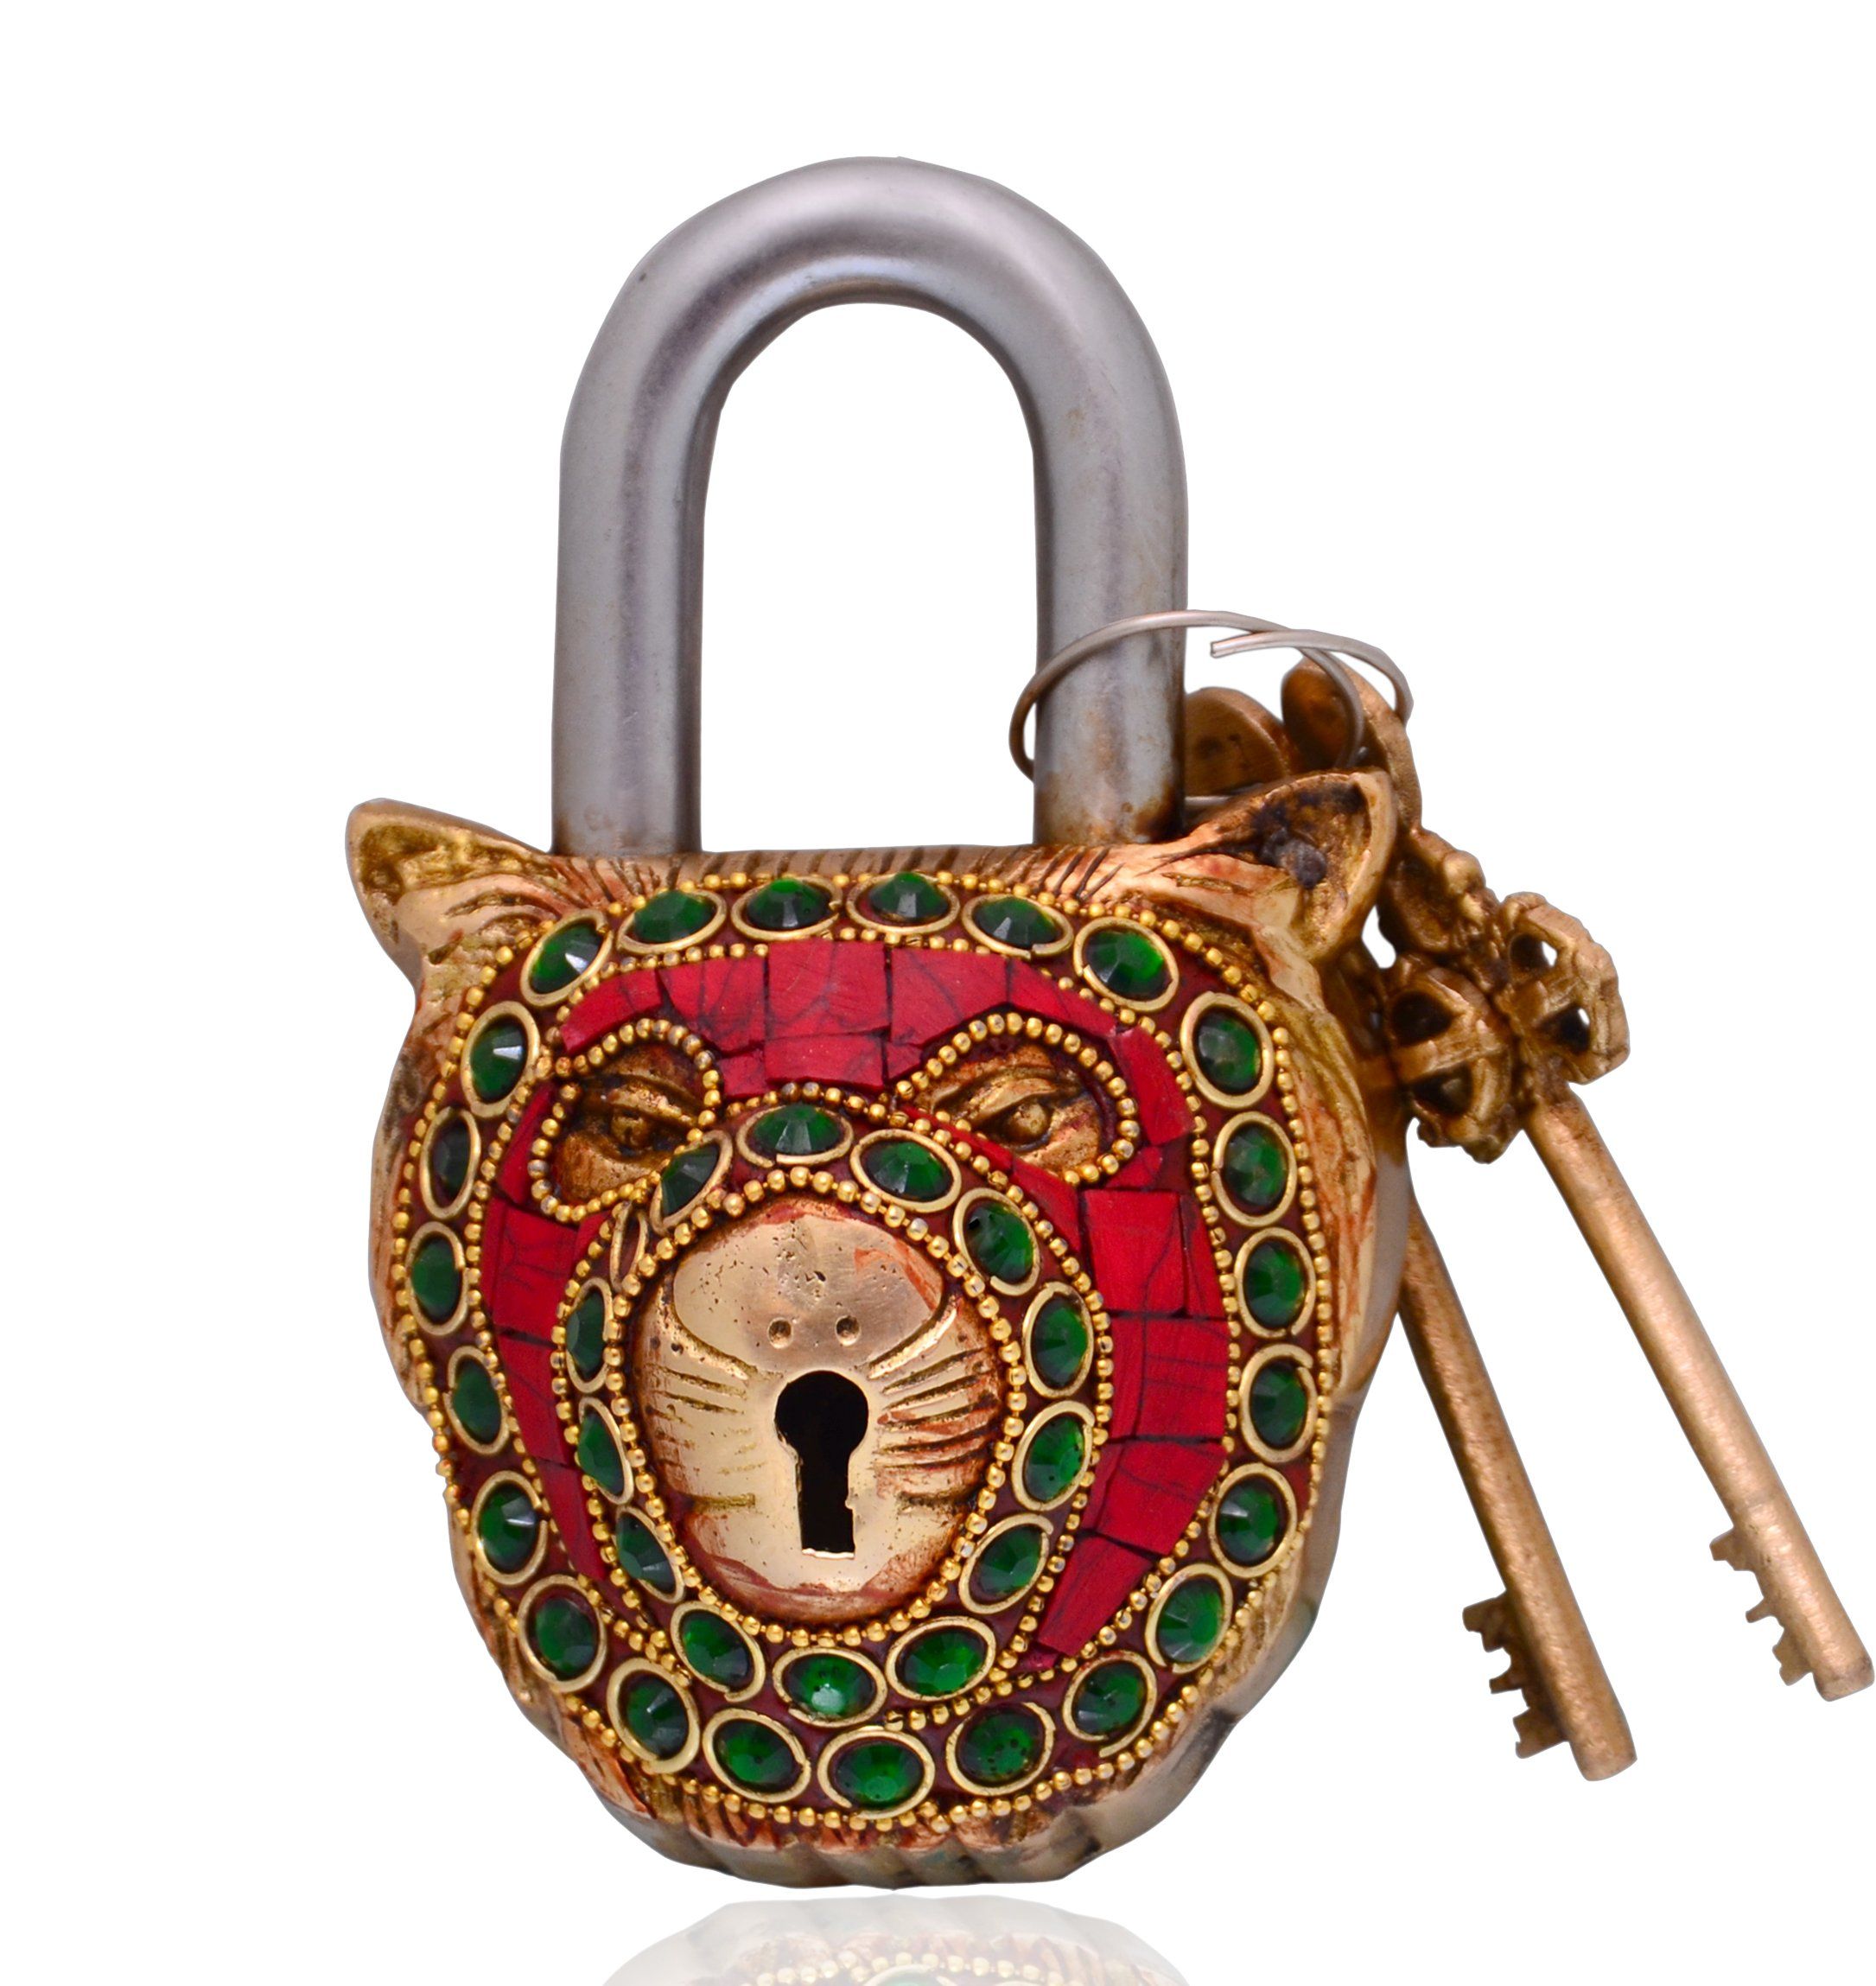 Purpledip Lion Shaped Brass Lock Padlock: Handmade Antique Design With Colorful Gemstone Work; Unique Collectible Combination Of Style & Security (10699)